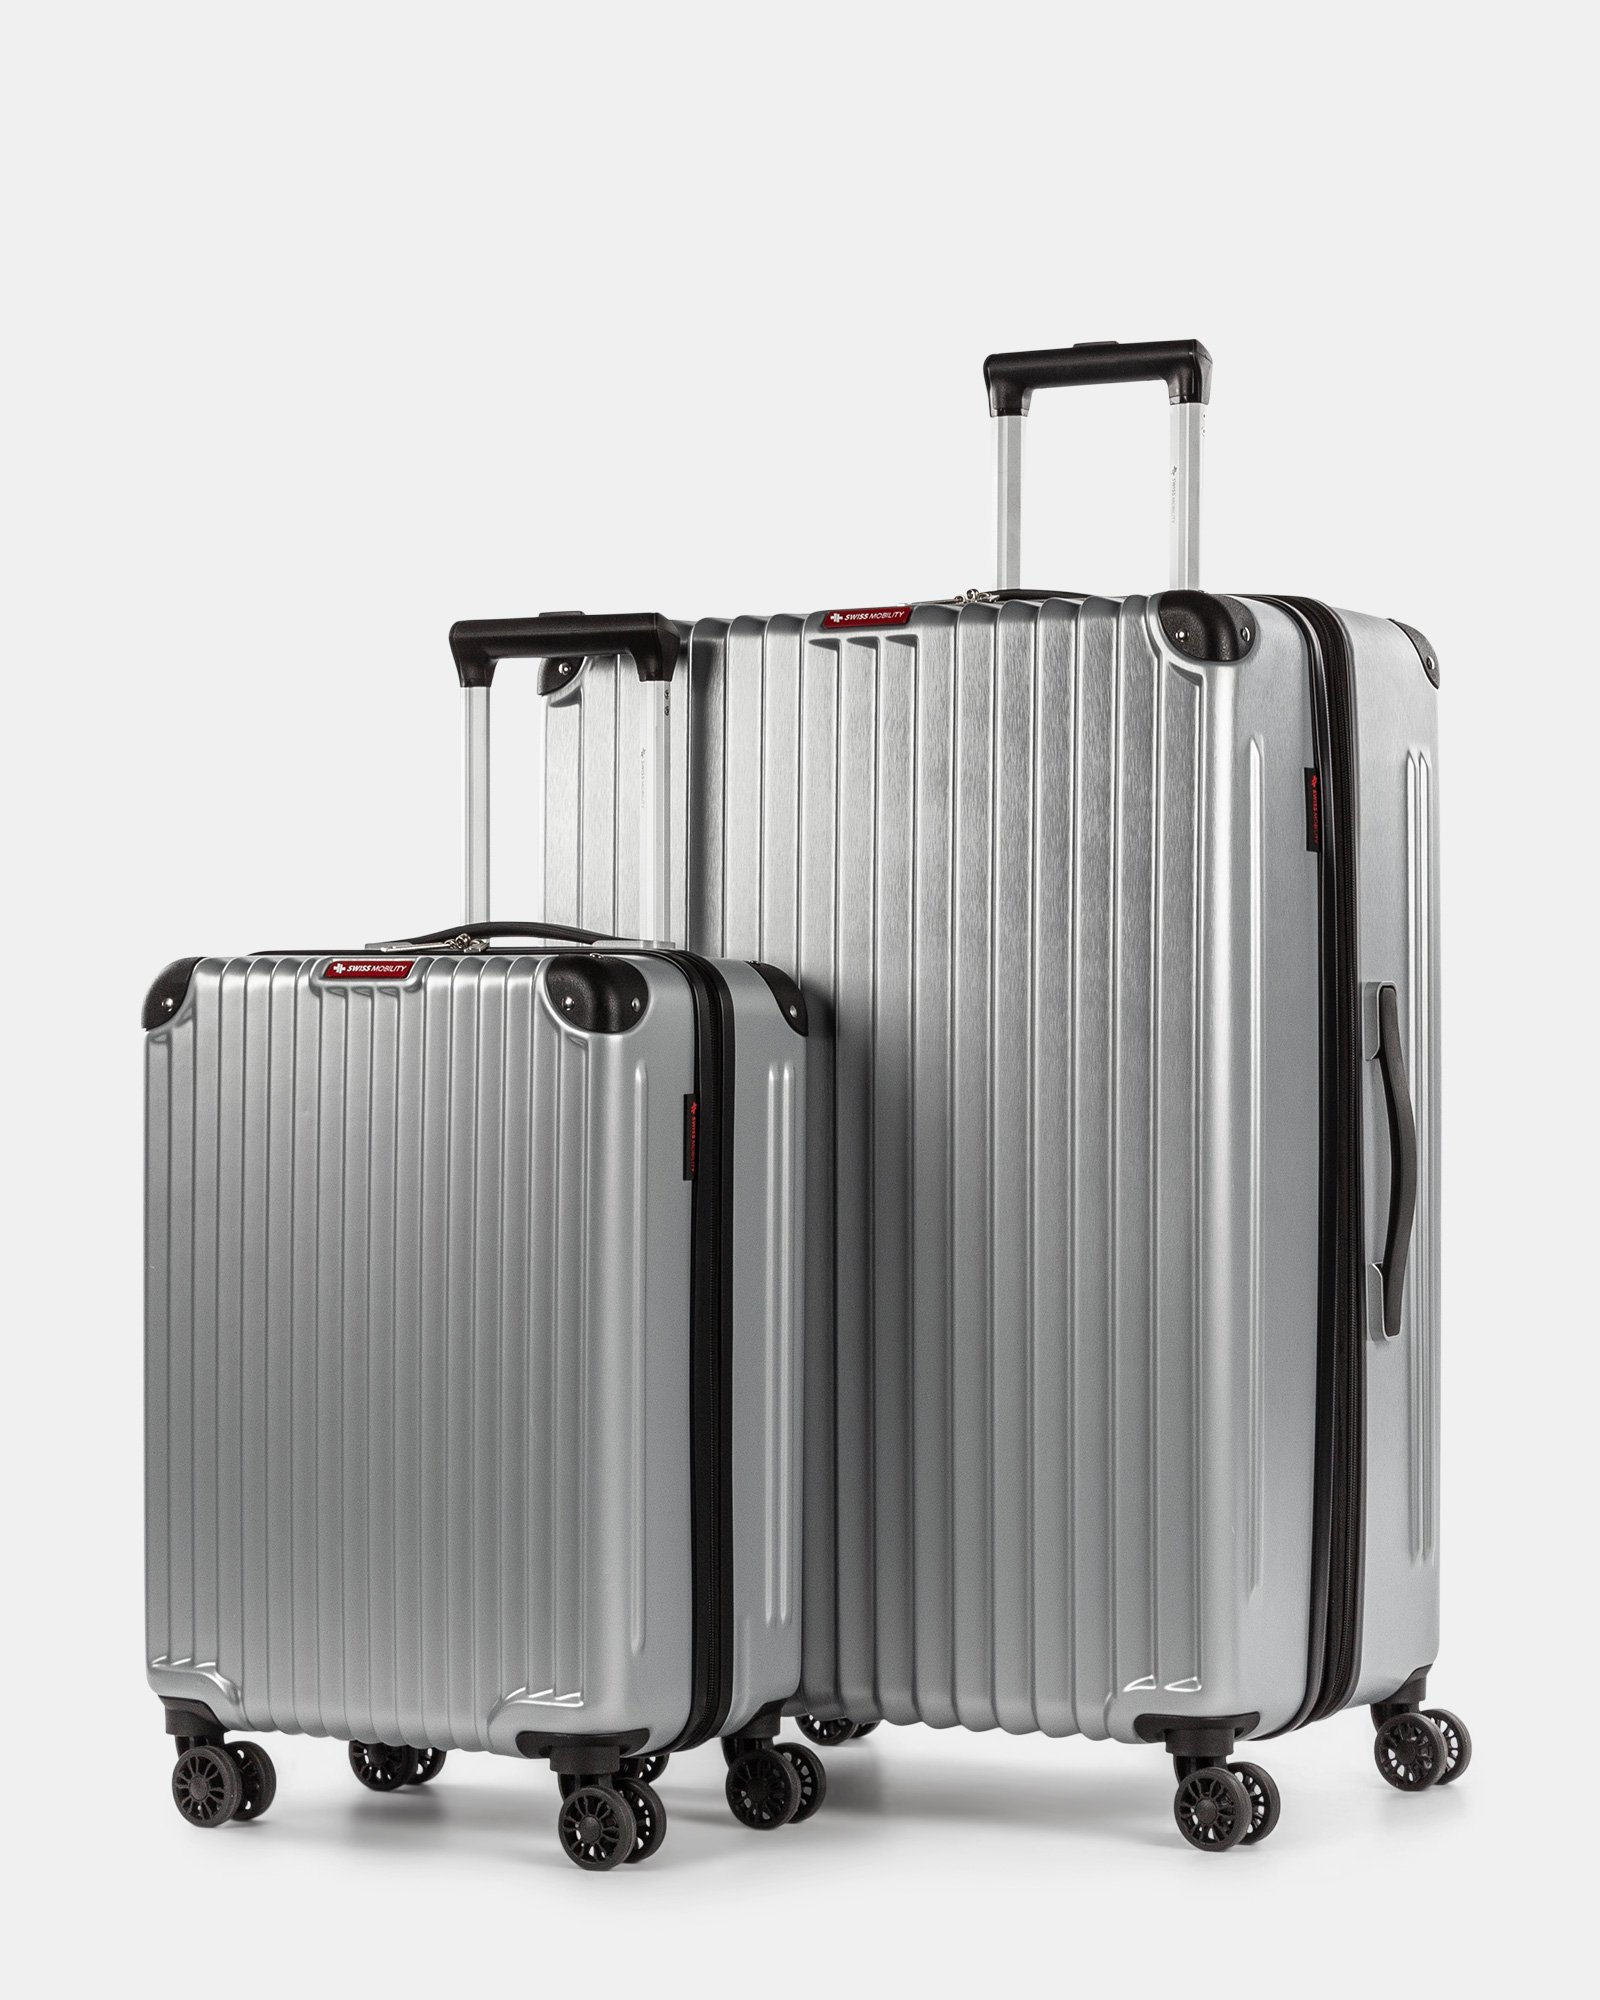 Ember – 2-Piece Hardside Luggage Set - Swiss Mobility - Zoom